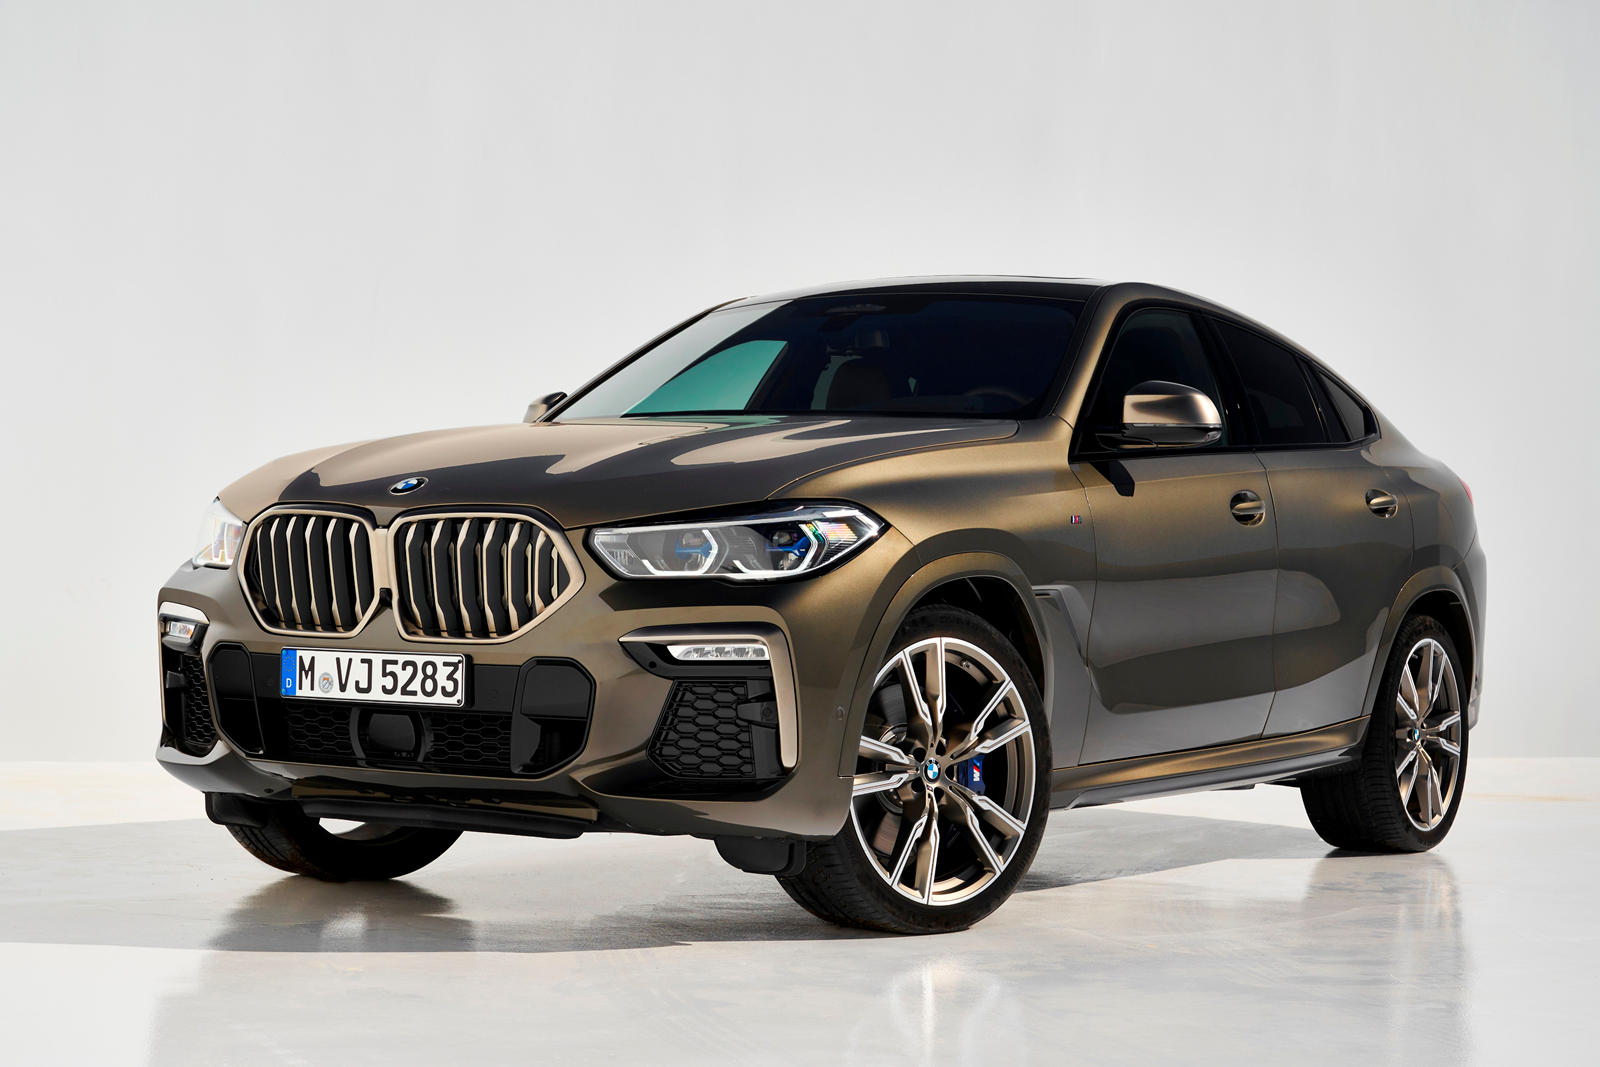 2020 BMW X6 SUV Front View